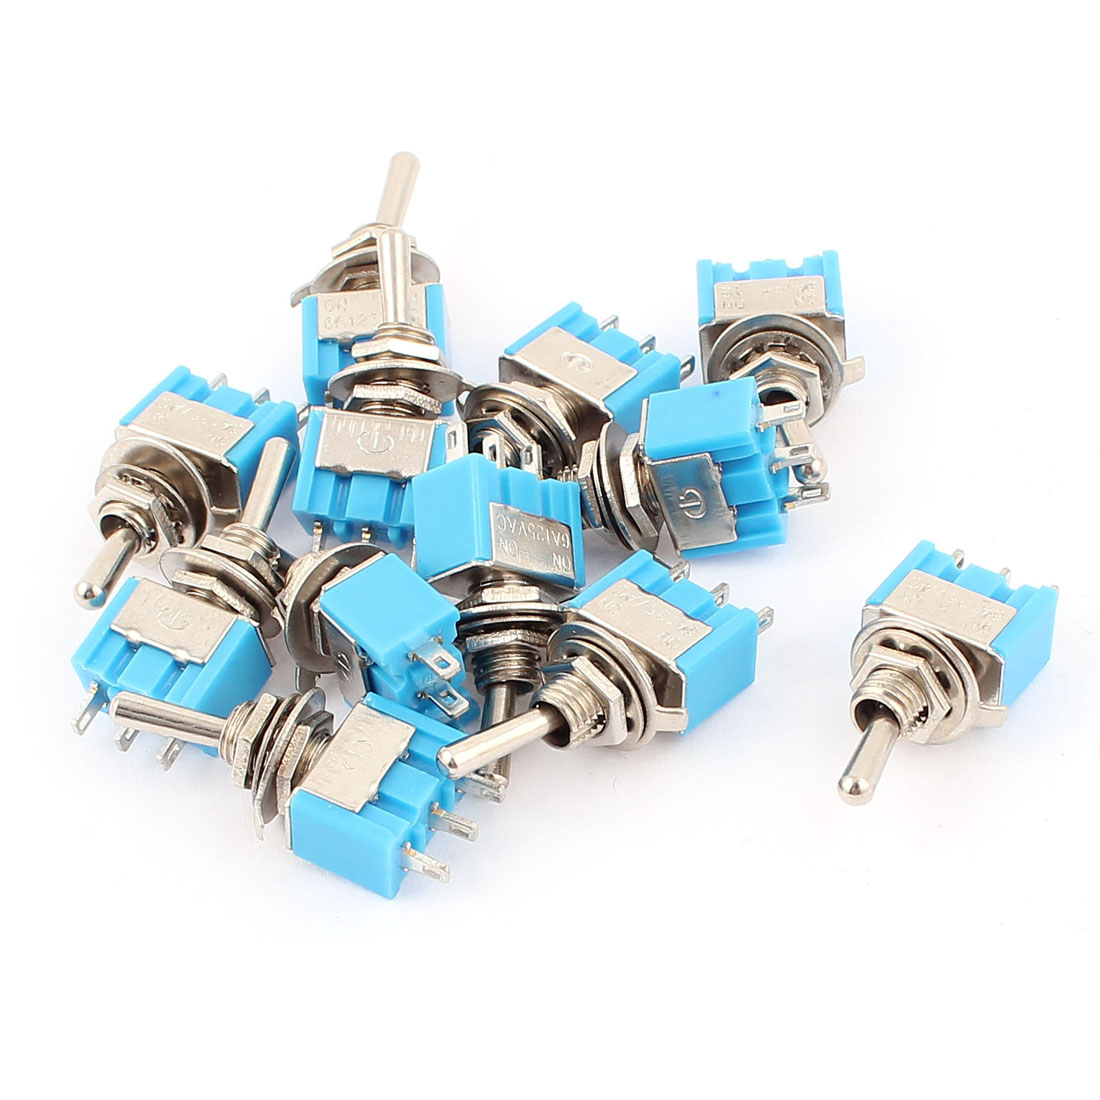 12 Pcs AC 125V 6A 3Pole SPDT ON-ON Self Locking Mini Toggle Switches Blue